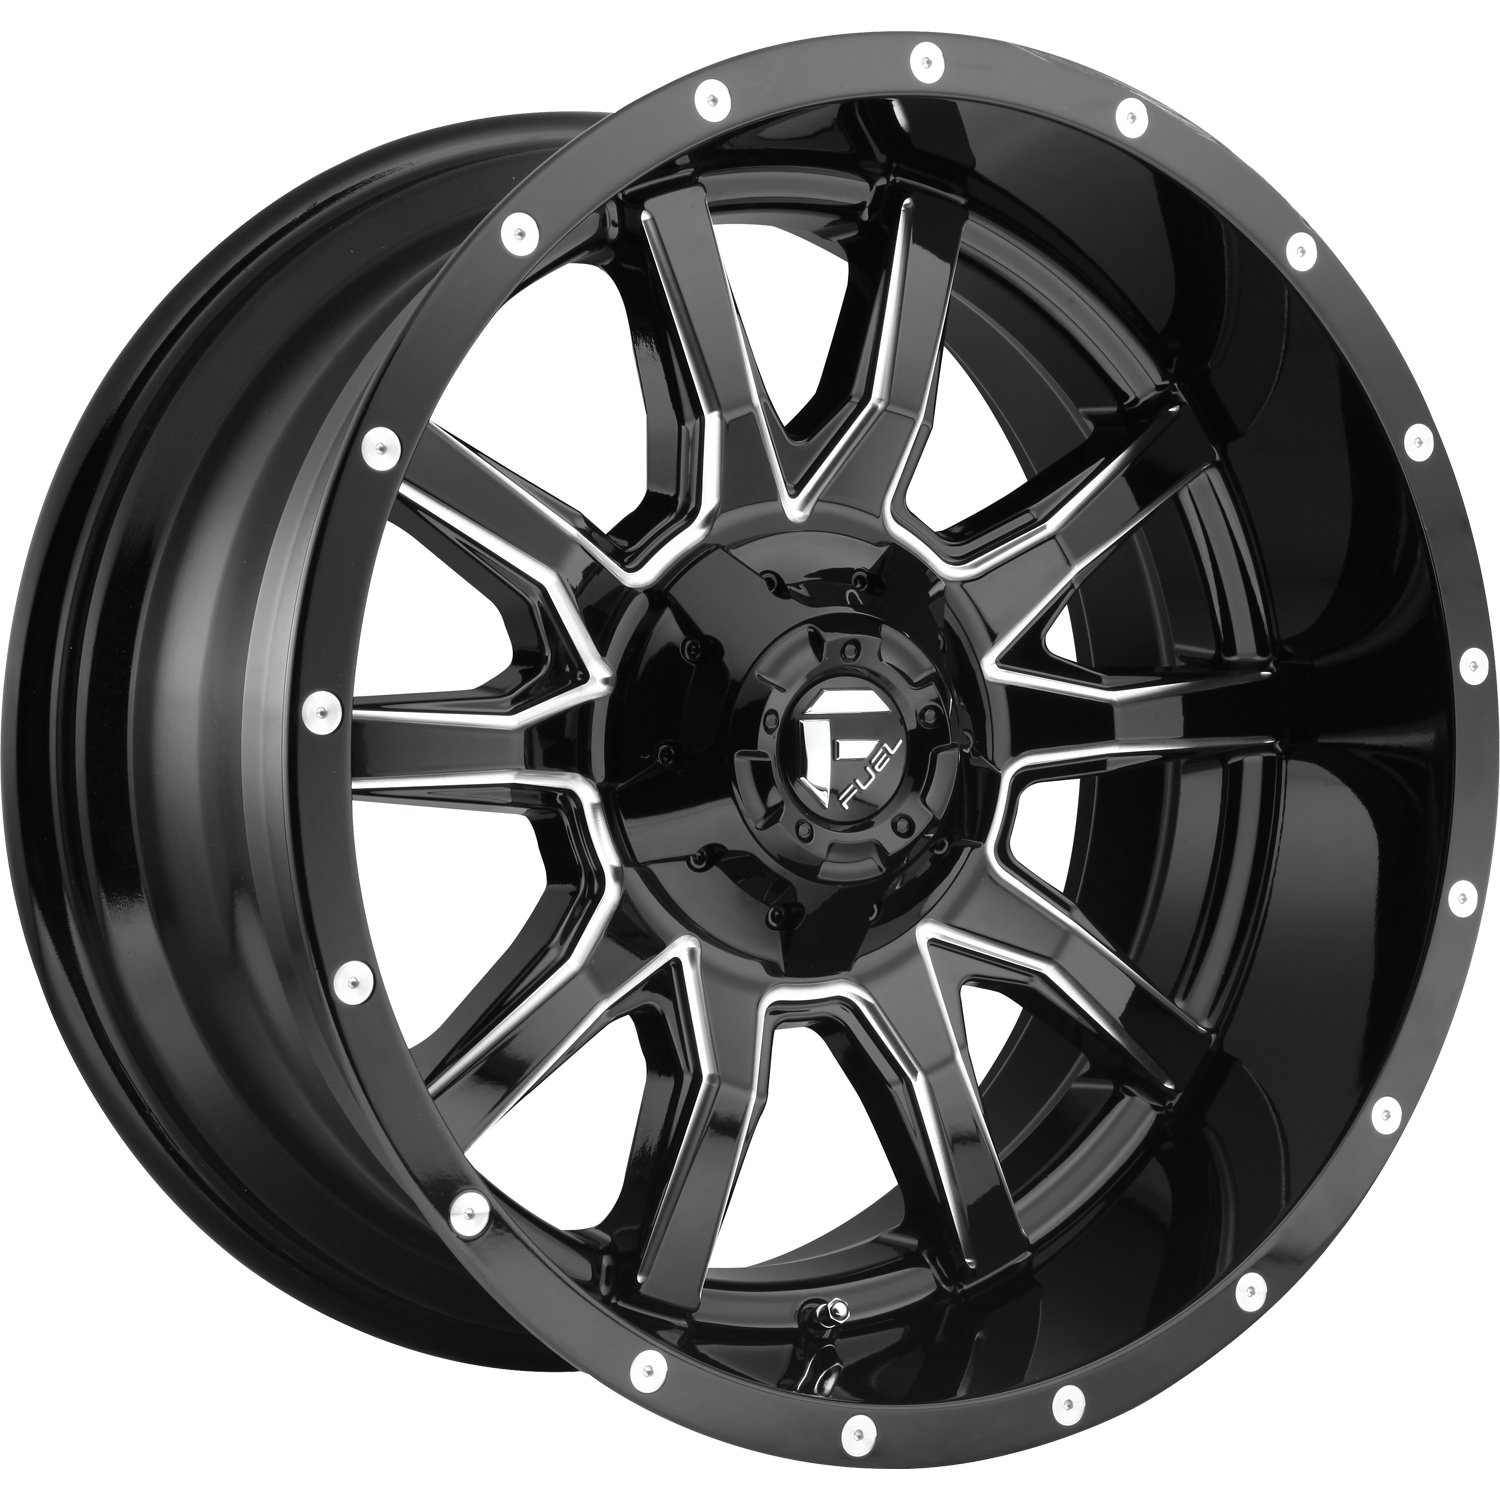 Fuel Vandal Gloss Black with Milled Spoke Edges 18x9 -12mm